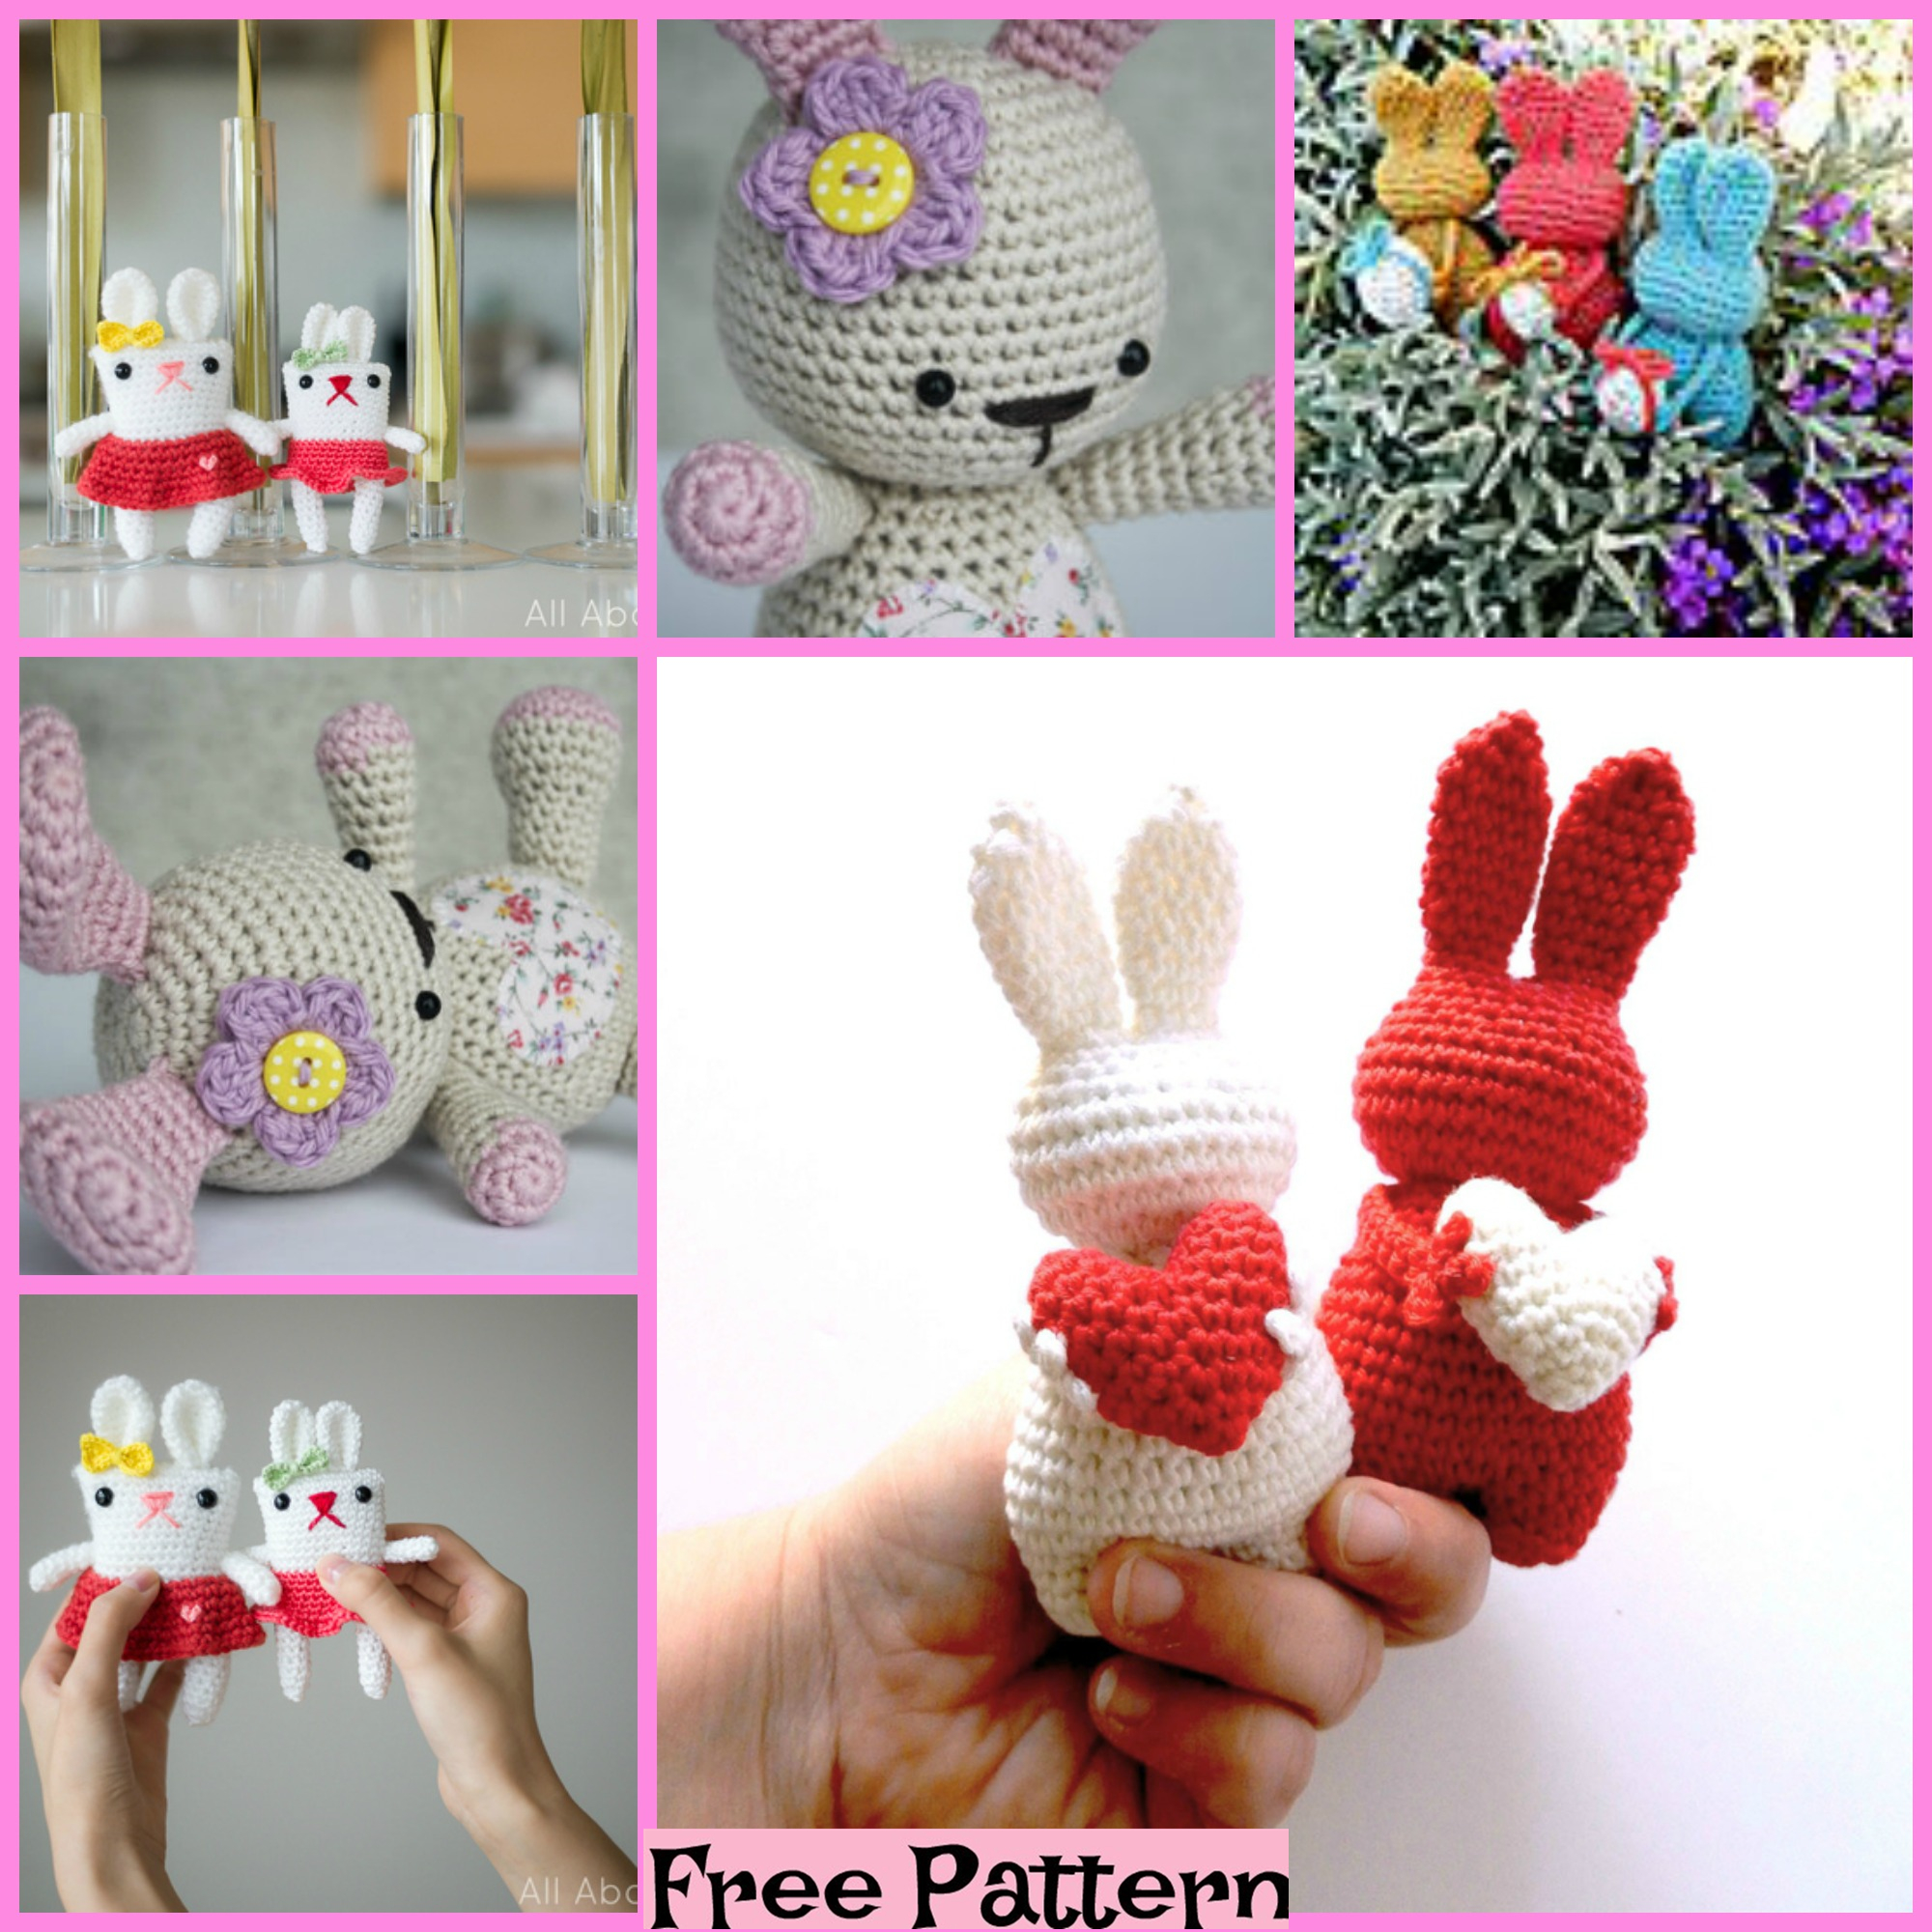 diy4ever-Crochet Valentine Bunny - Free Pattern